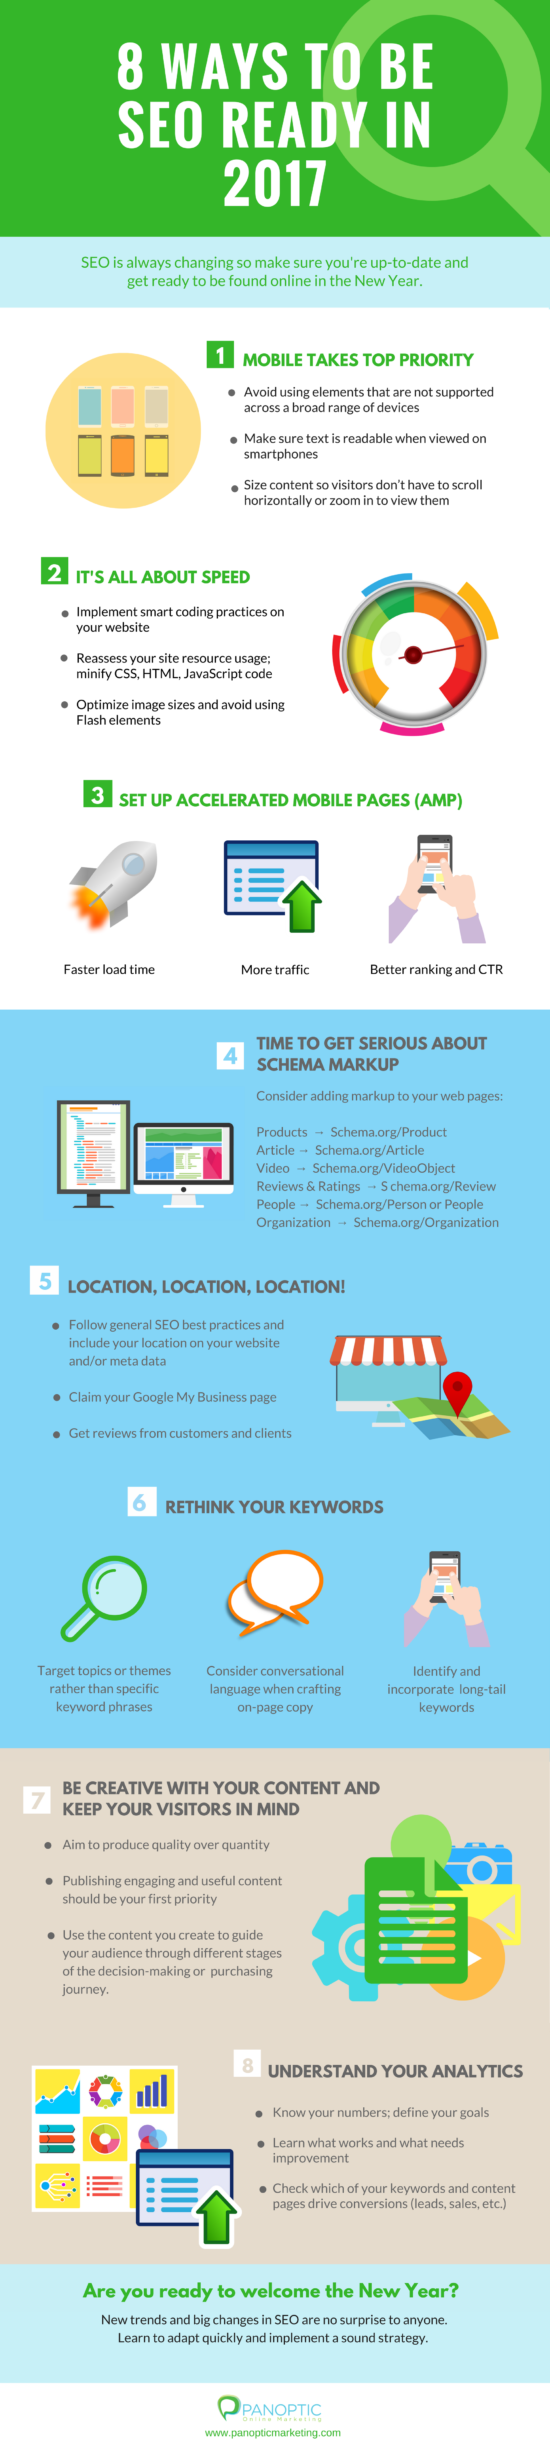 8-ways-to-be-seo-ready-in-2017-infograpics